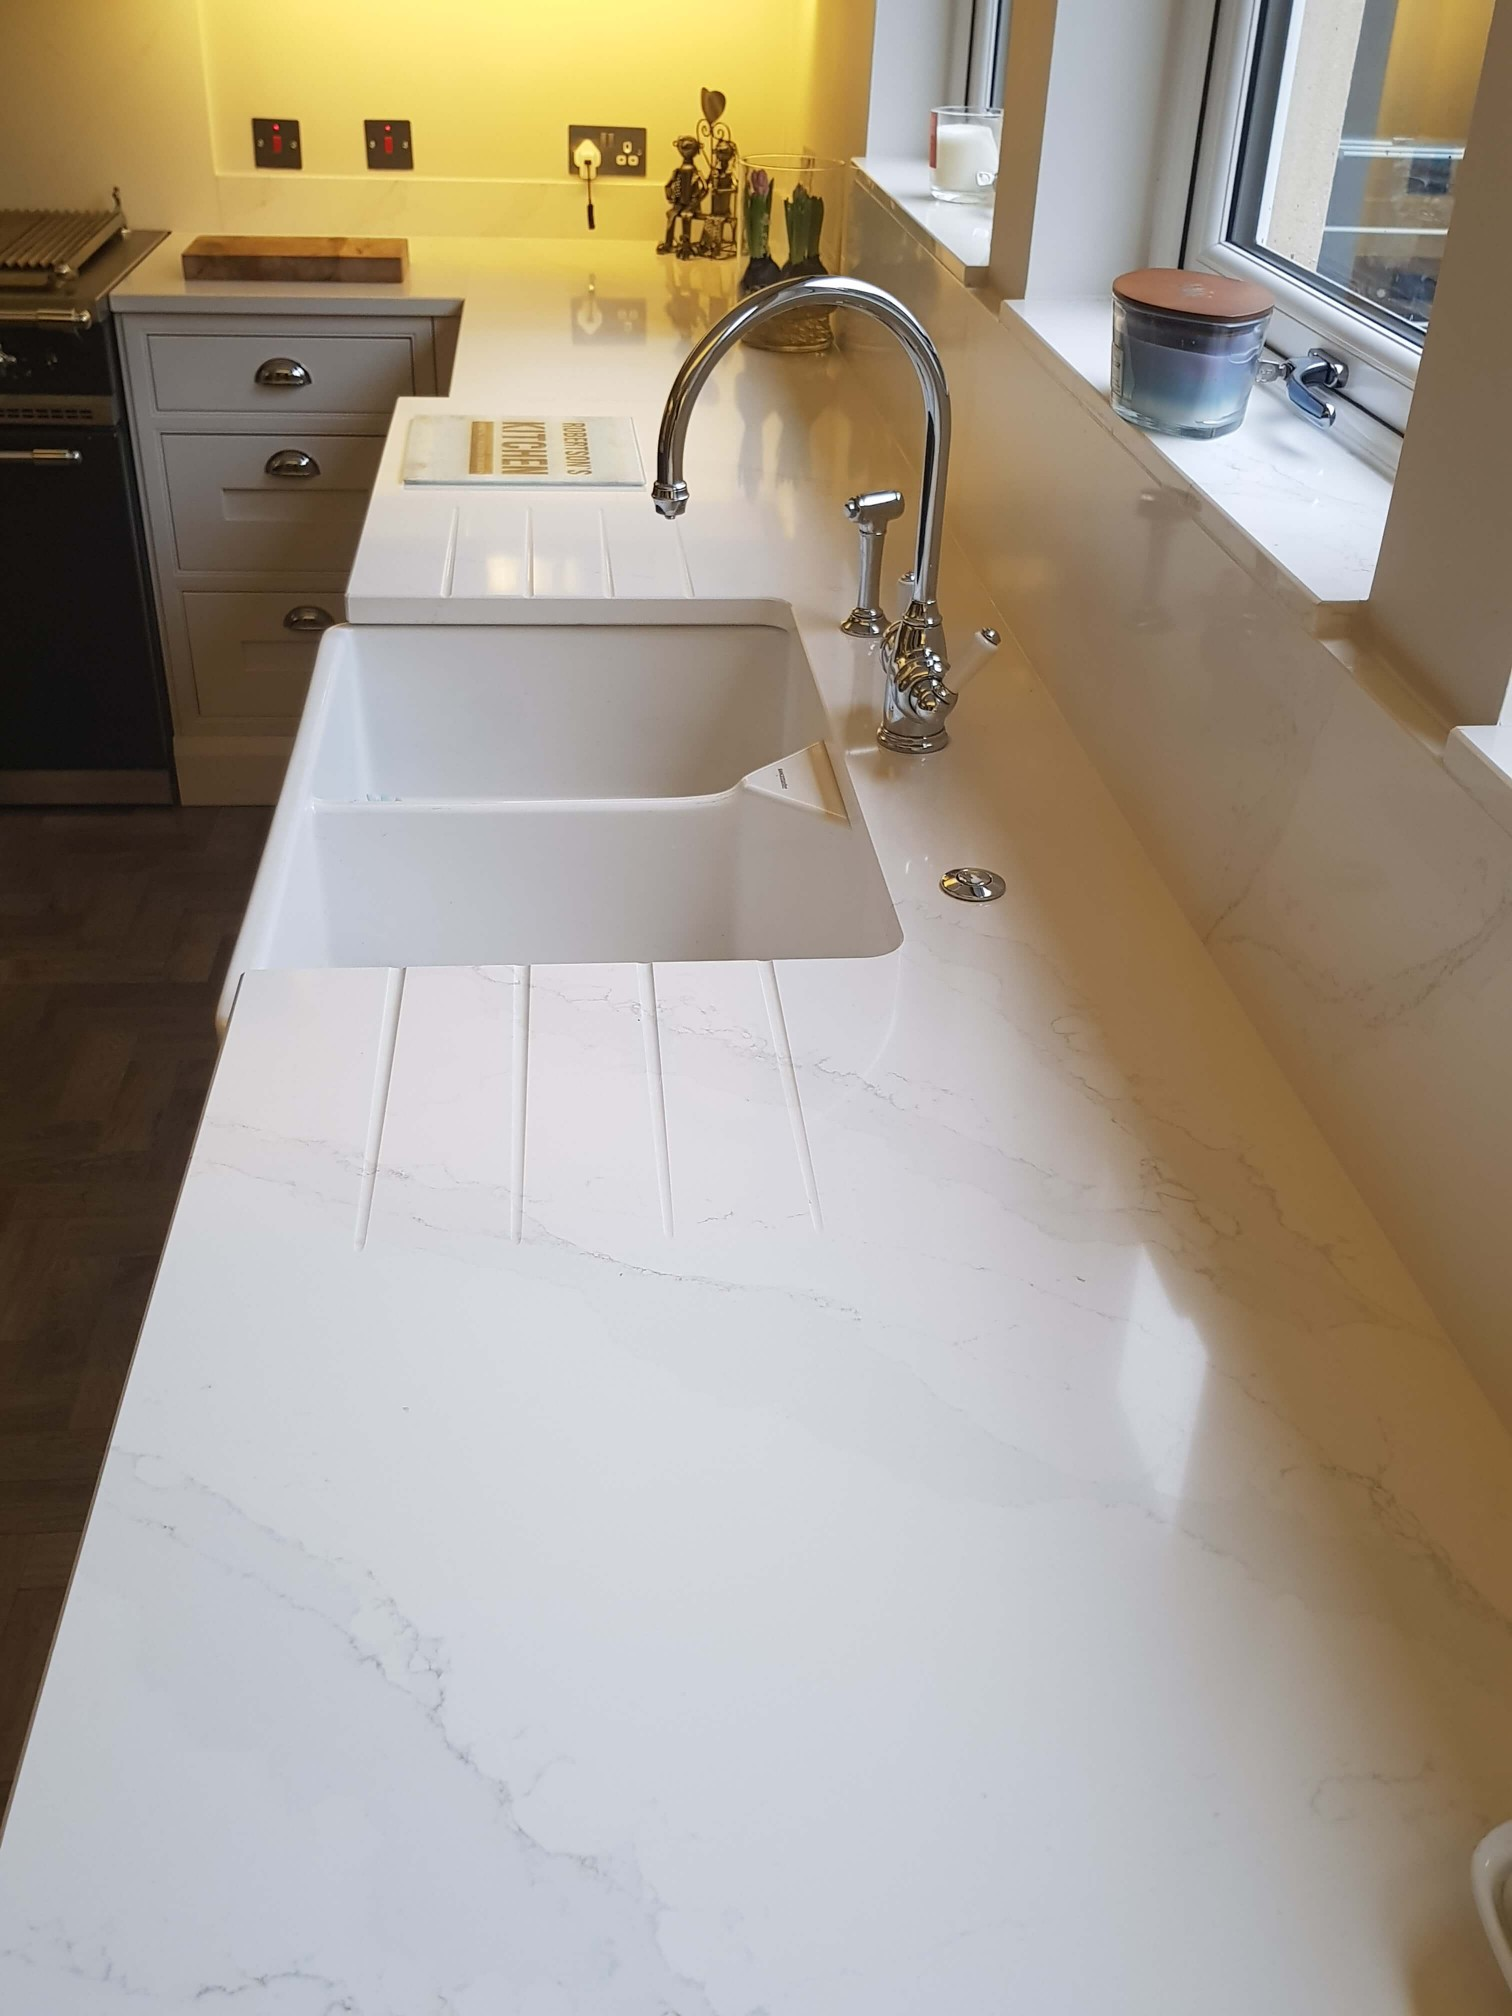 Bespoke Inframe Kitchen Belfast Sink and Tap